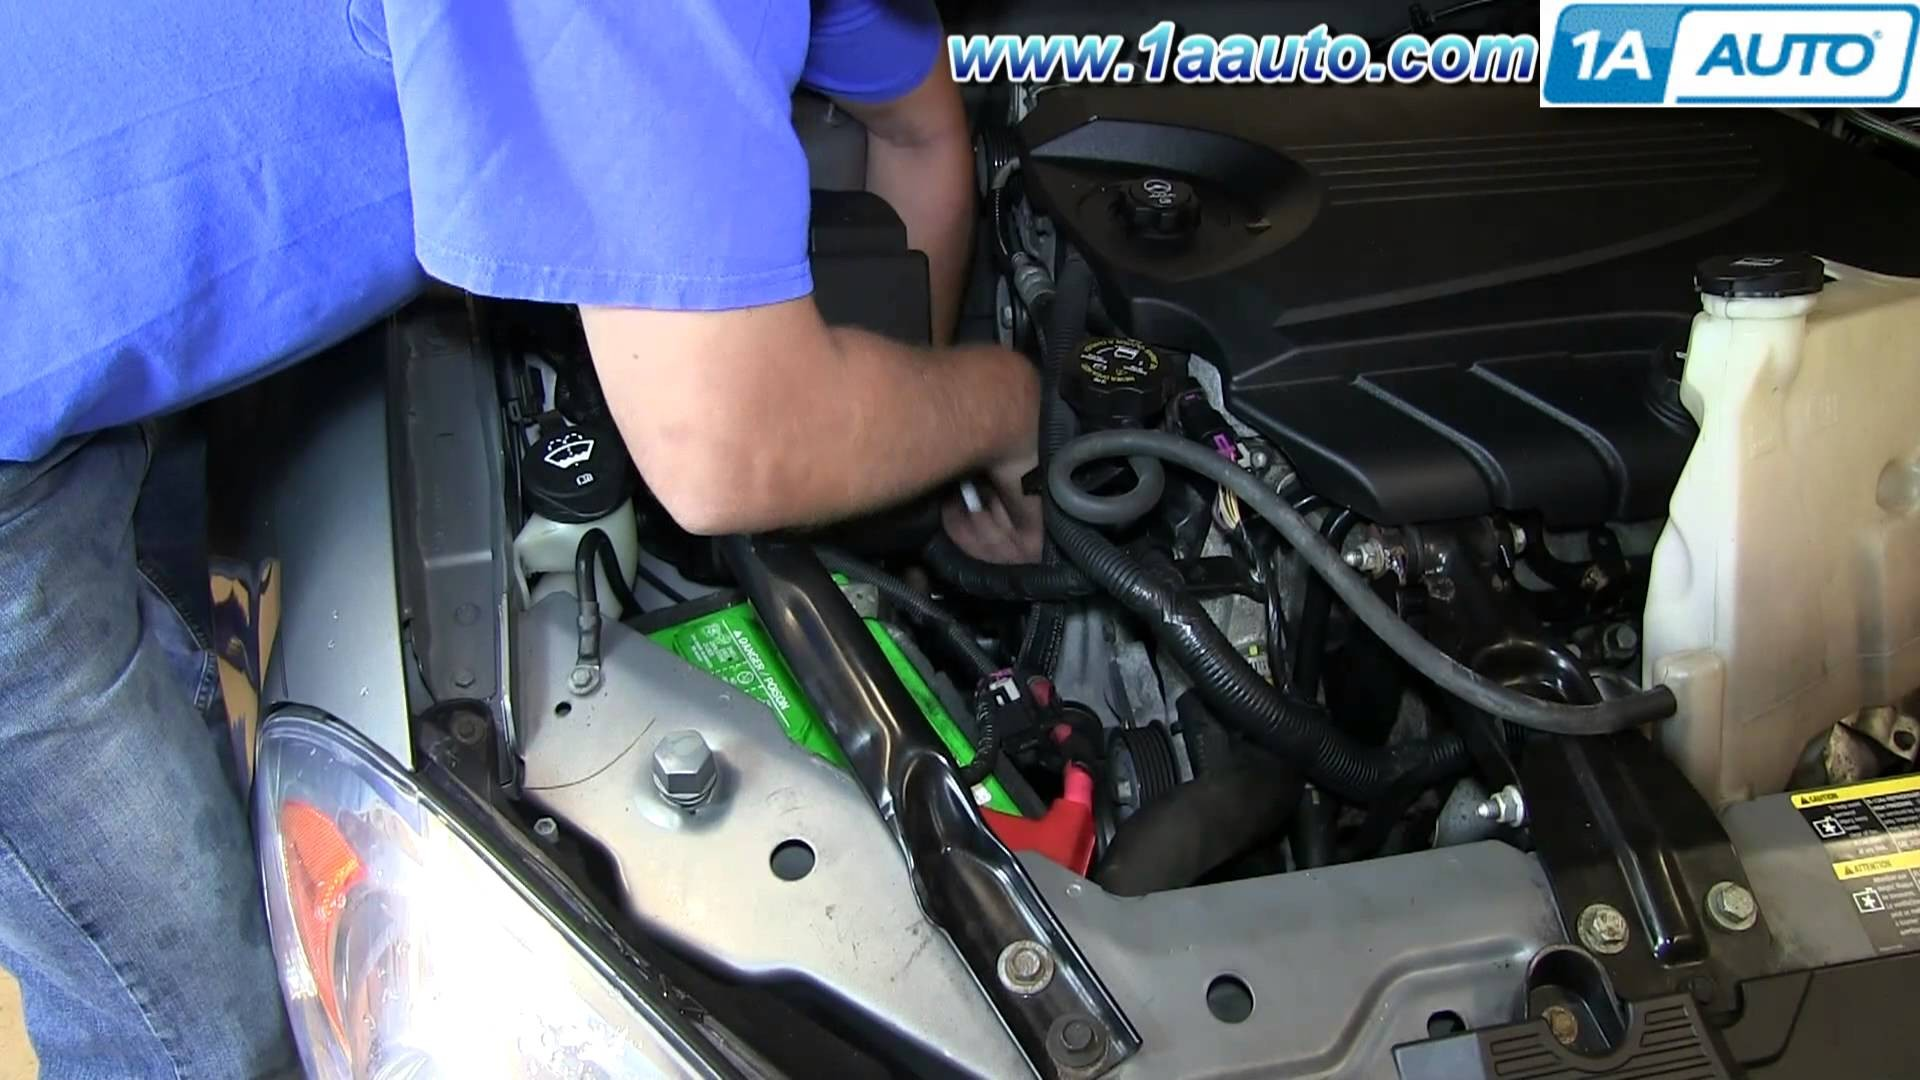 2007 Chevy Uplander Engine Diagram How to Install Replace Engine Serpentine Belt Tensioner 2006 12 Of 2007 Chevy Uplander Engine Diagram How to Replace Install Engine Ignition Coil 2006 12 Chevy Impala 3 5